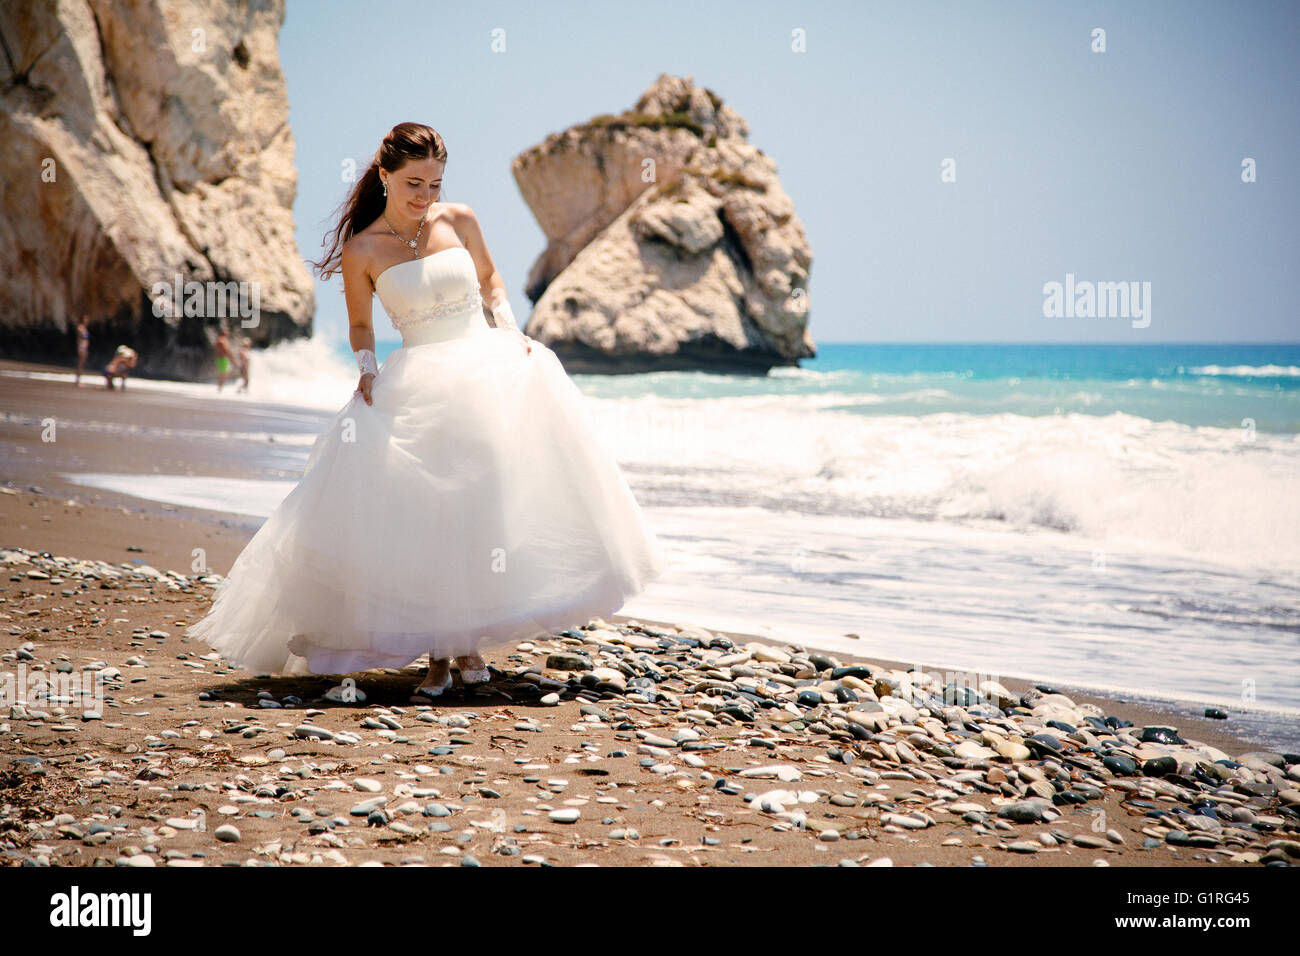 68bd7f9469 outdoor portrait of young beautiful woman bride in wedding dress on beach.  Petra tou Romiou - Aphrodite's Rock.